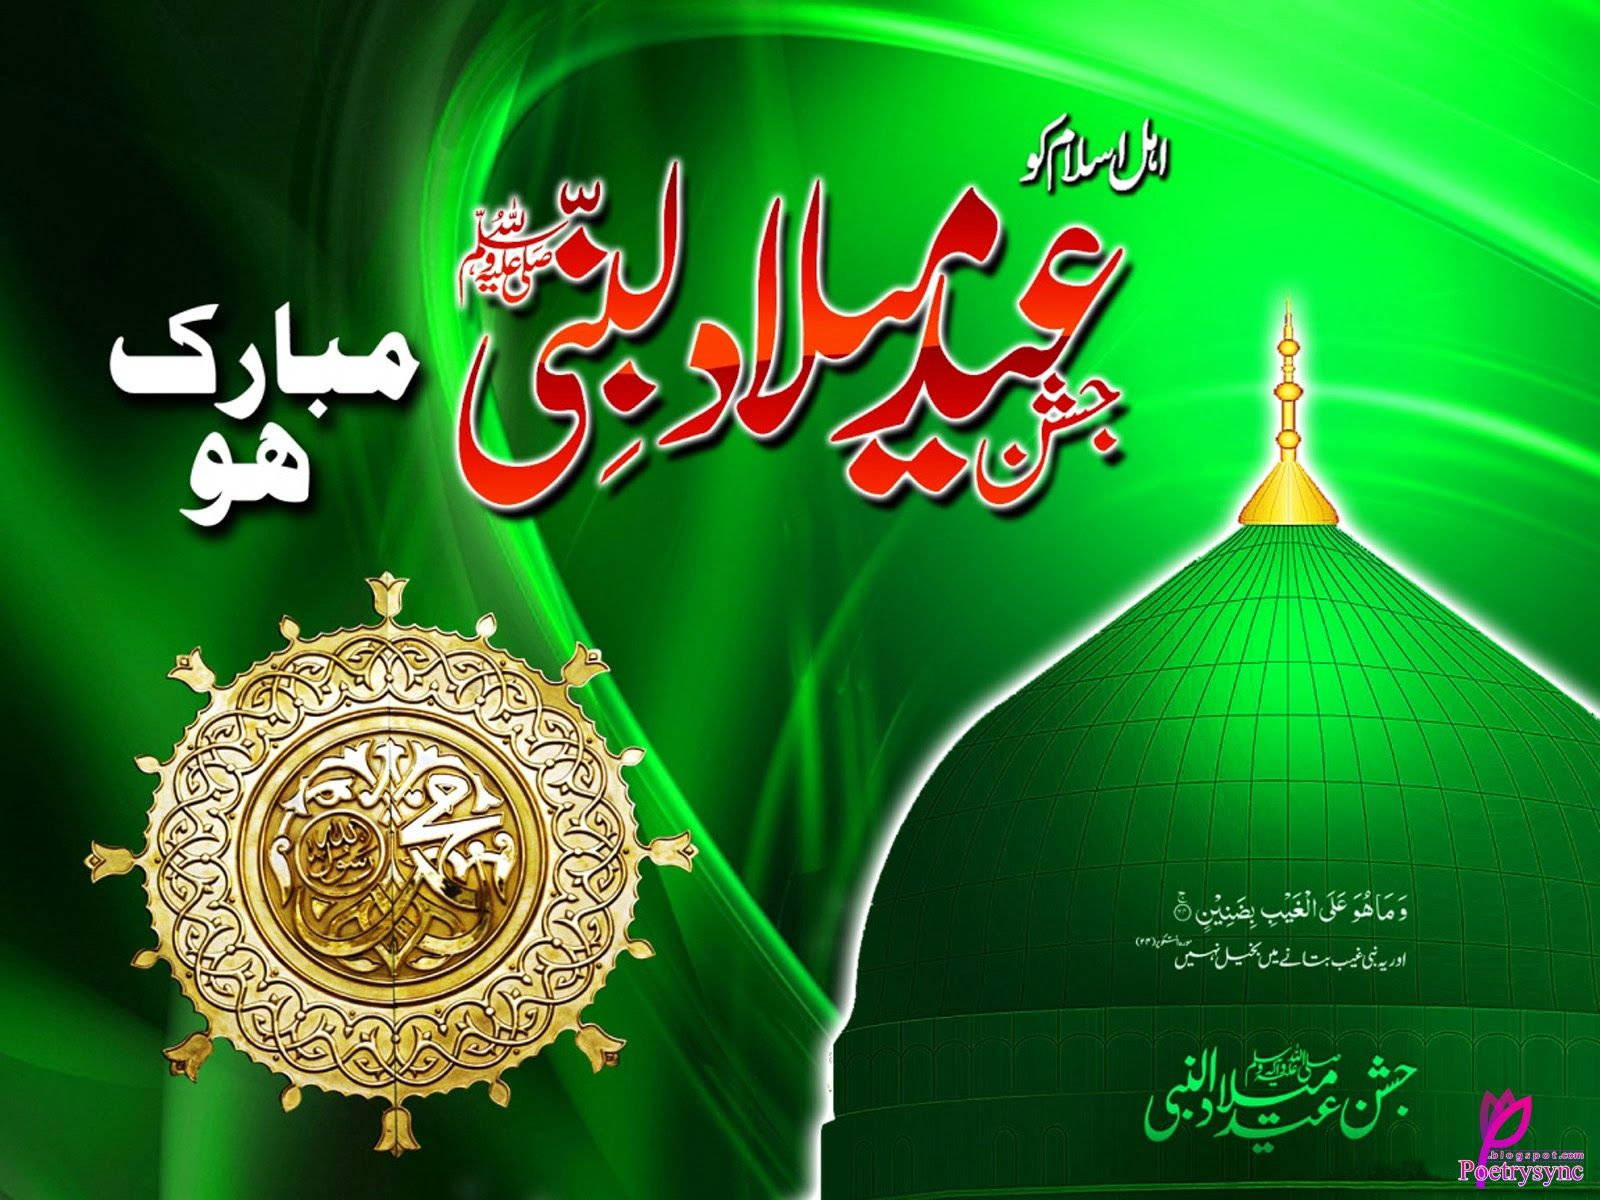 Wallpaper download eid milad un nabi - Jashn E Eid Milad Un Nabi Greetings Card Picture With Quote